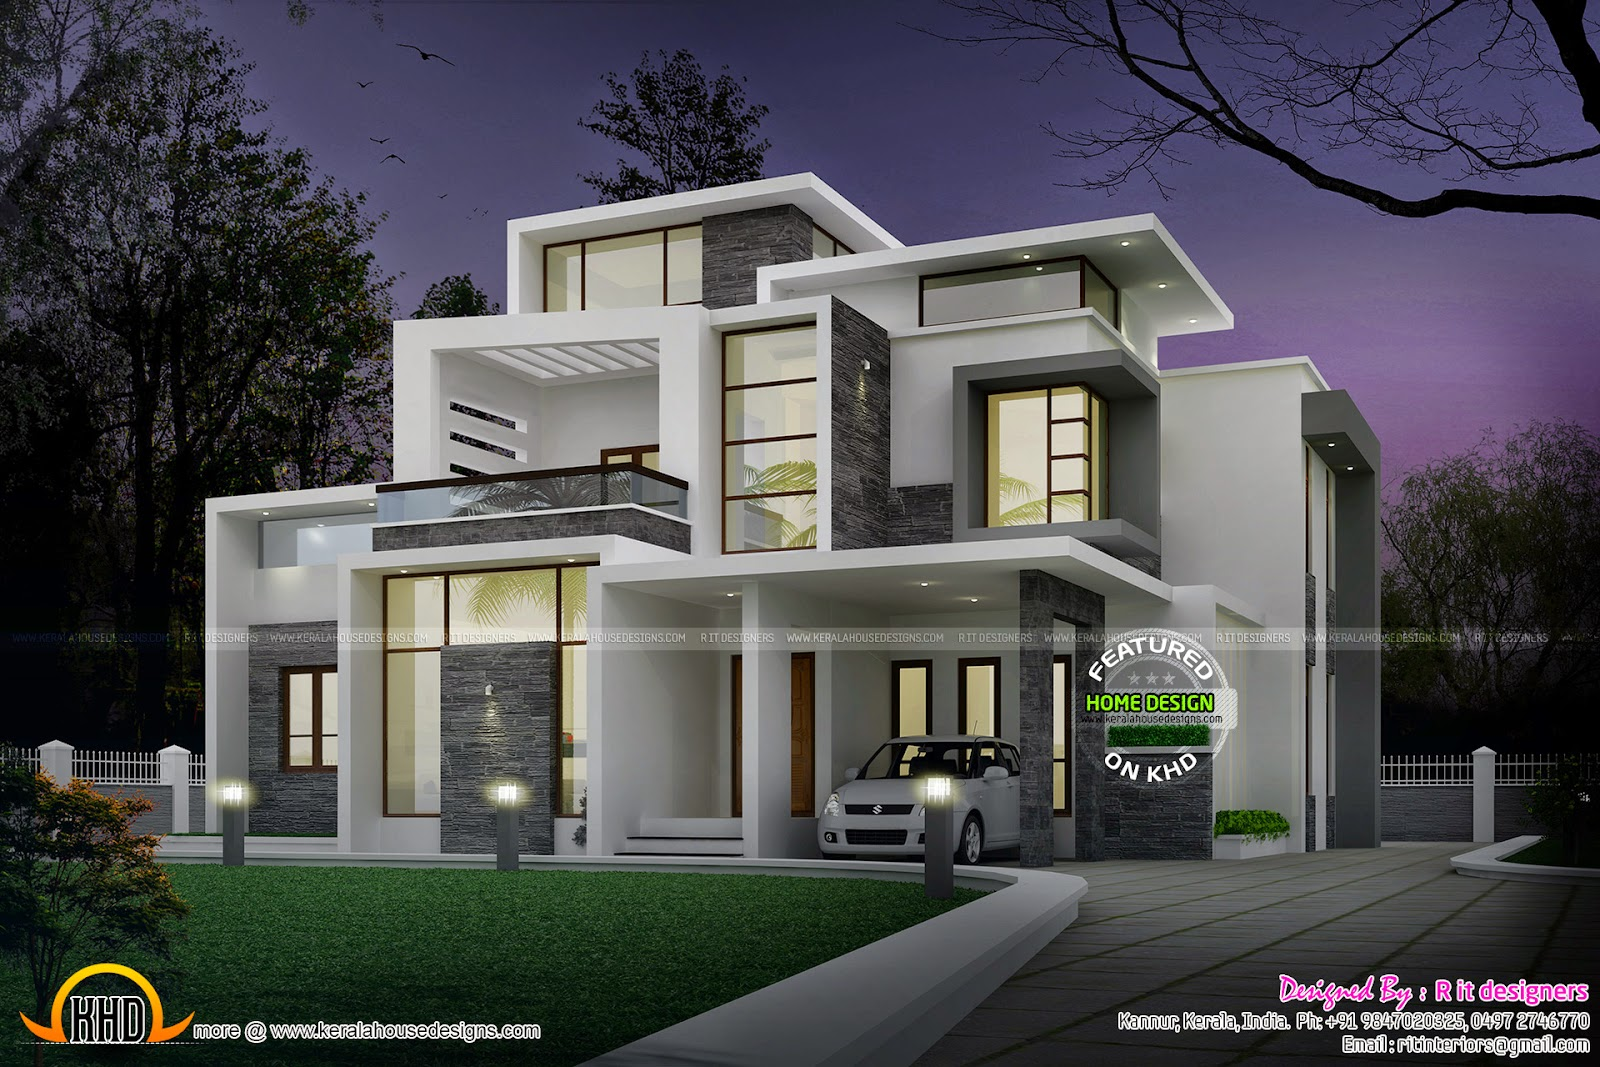 Grand contemporary home design kerala home design and for New house design